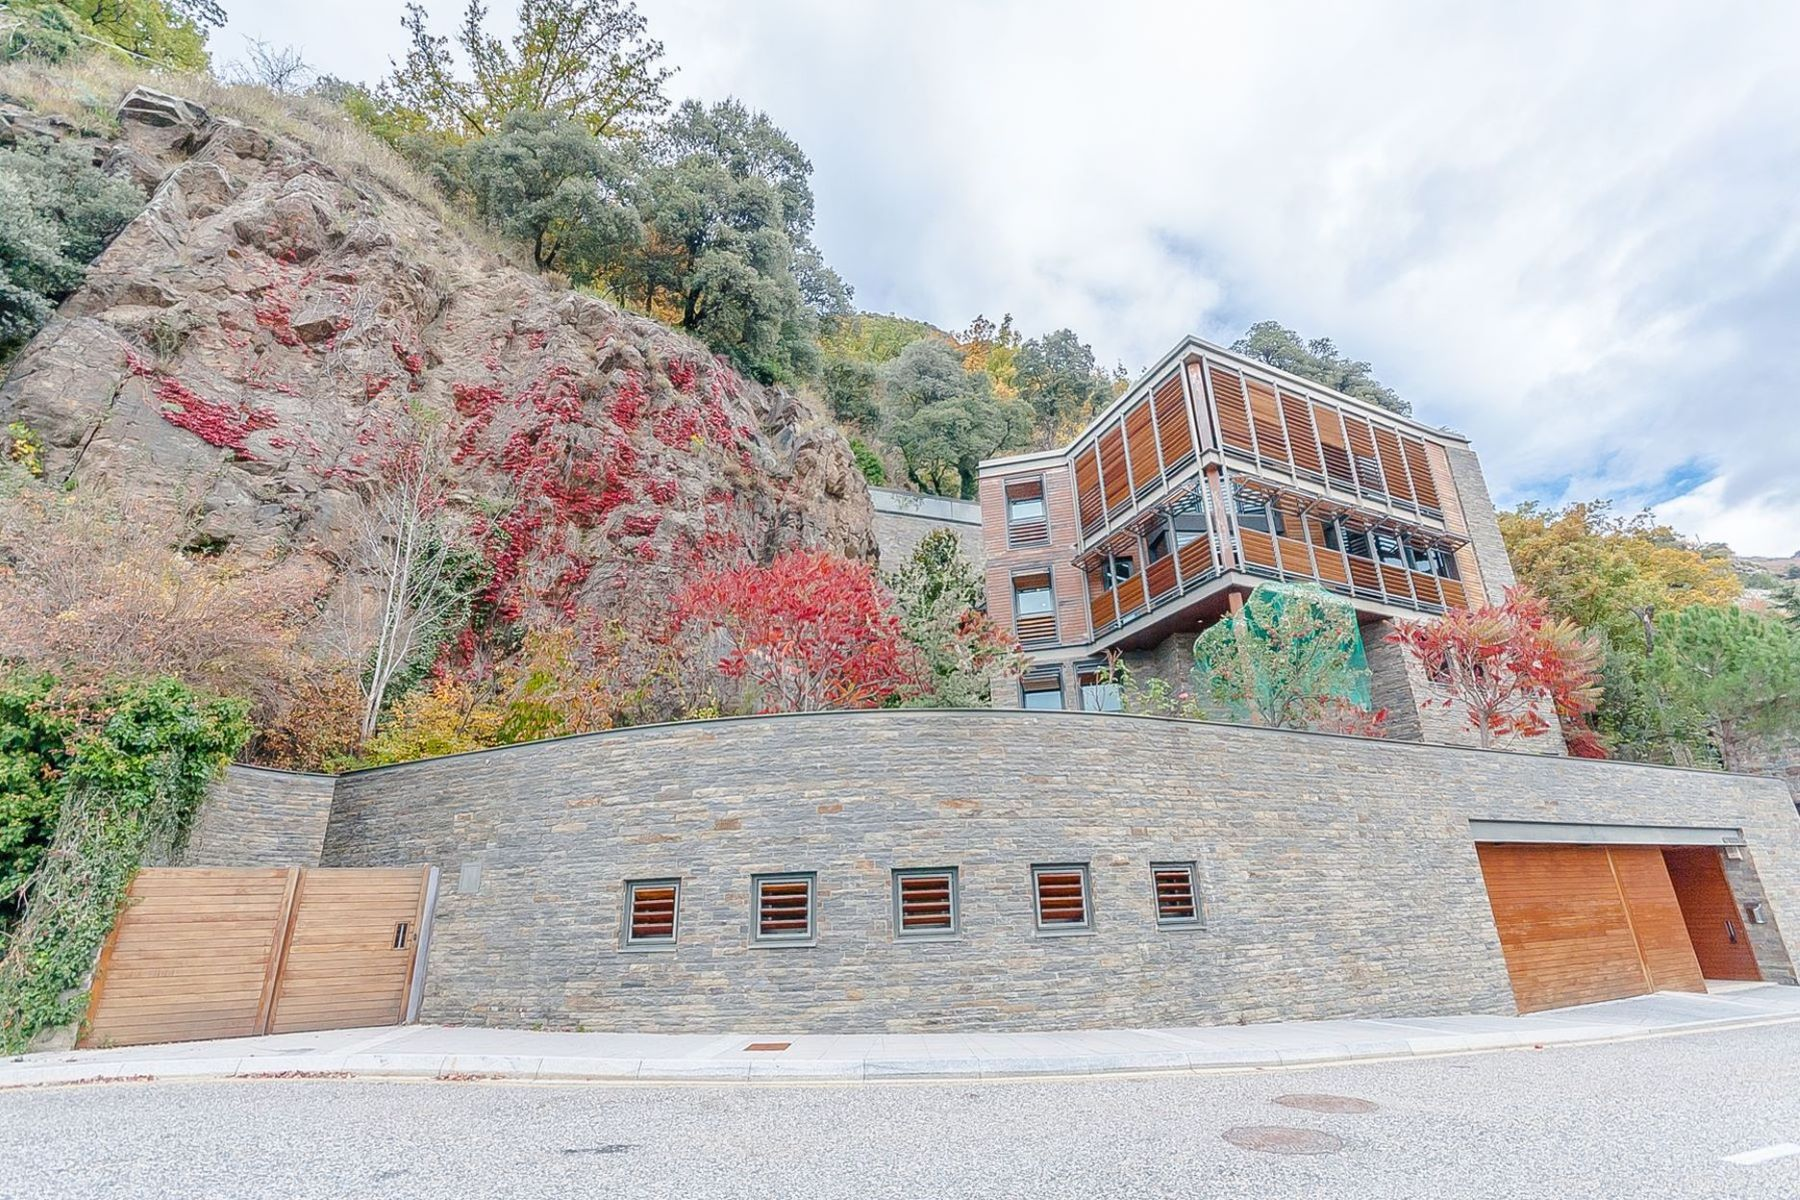 Single Family Home for Sale at Chalet-Tower for sale in Escaldes-Engordany Escaldes Engordany, Escaldes Engordany, AD700 Andorra